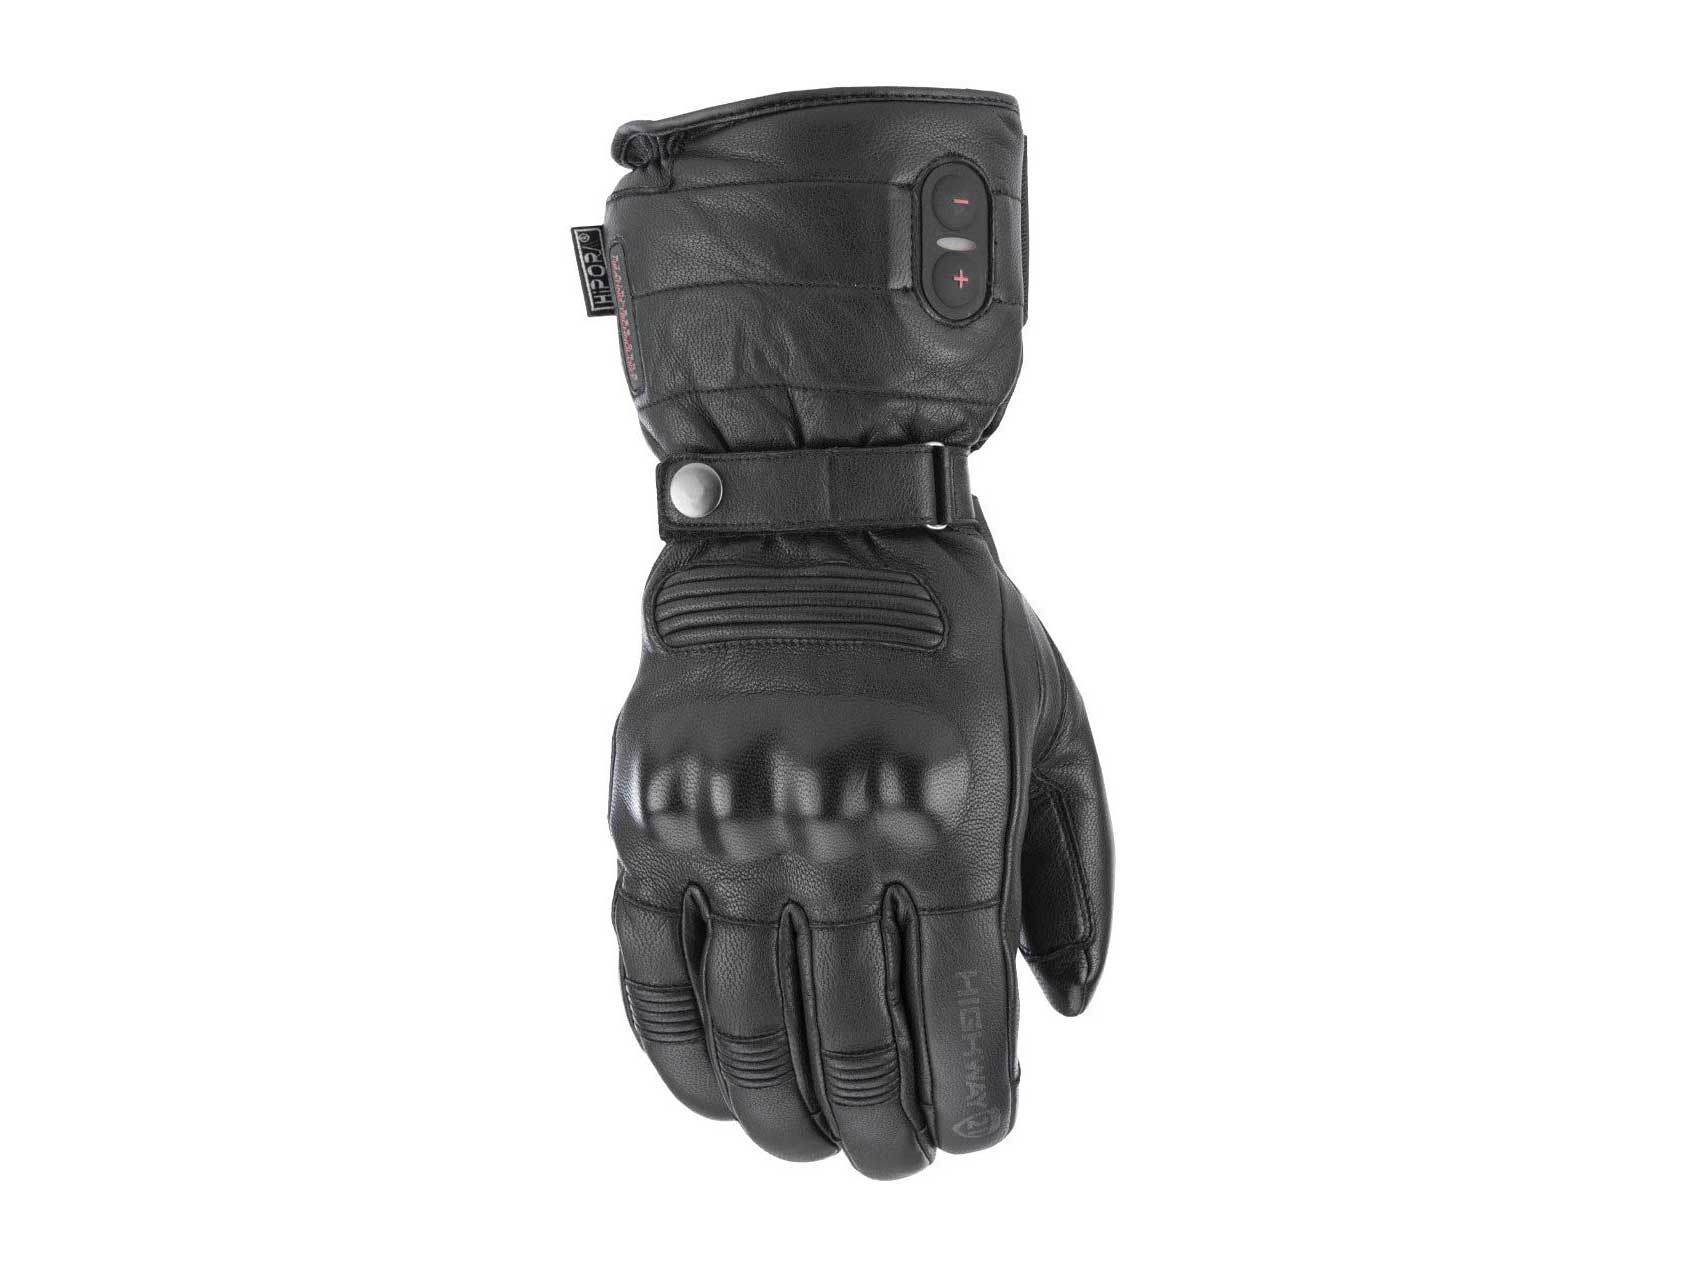 Highway 21Radiant Heated Men's Cold Weather Motorcycle Leather Glove Waterproof Black Size Large